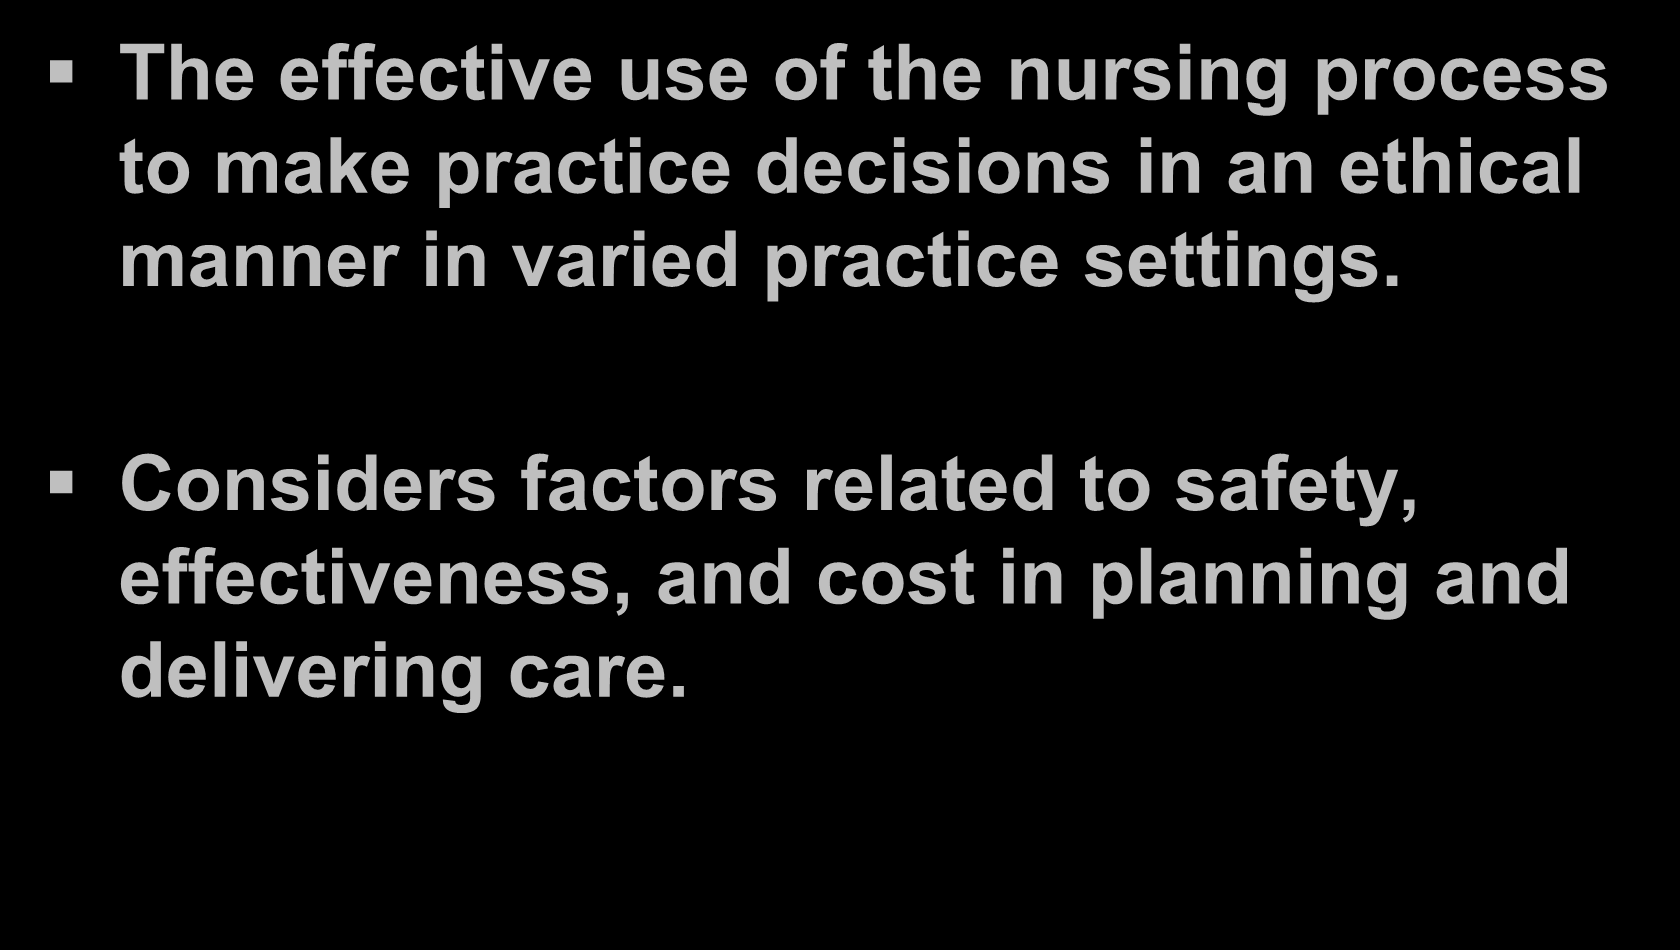 Dimension: Practice The effective use of the nursing process to make practice decisions in an ethical manner in